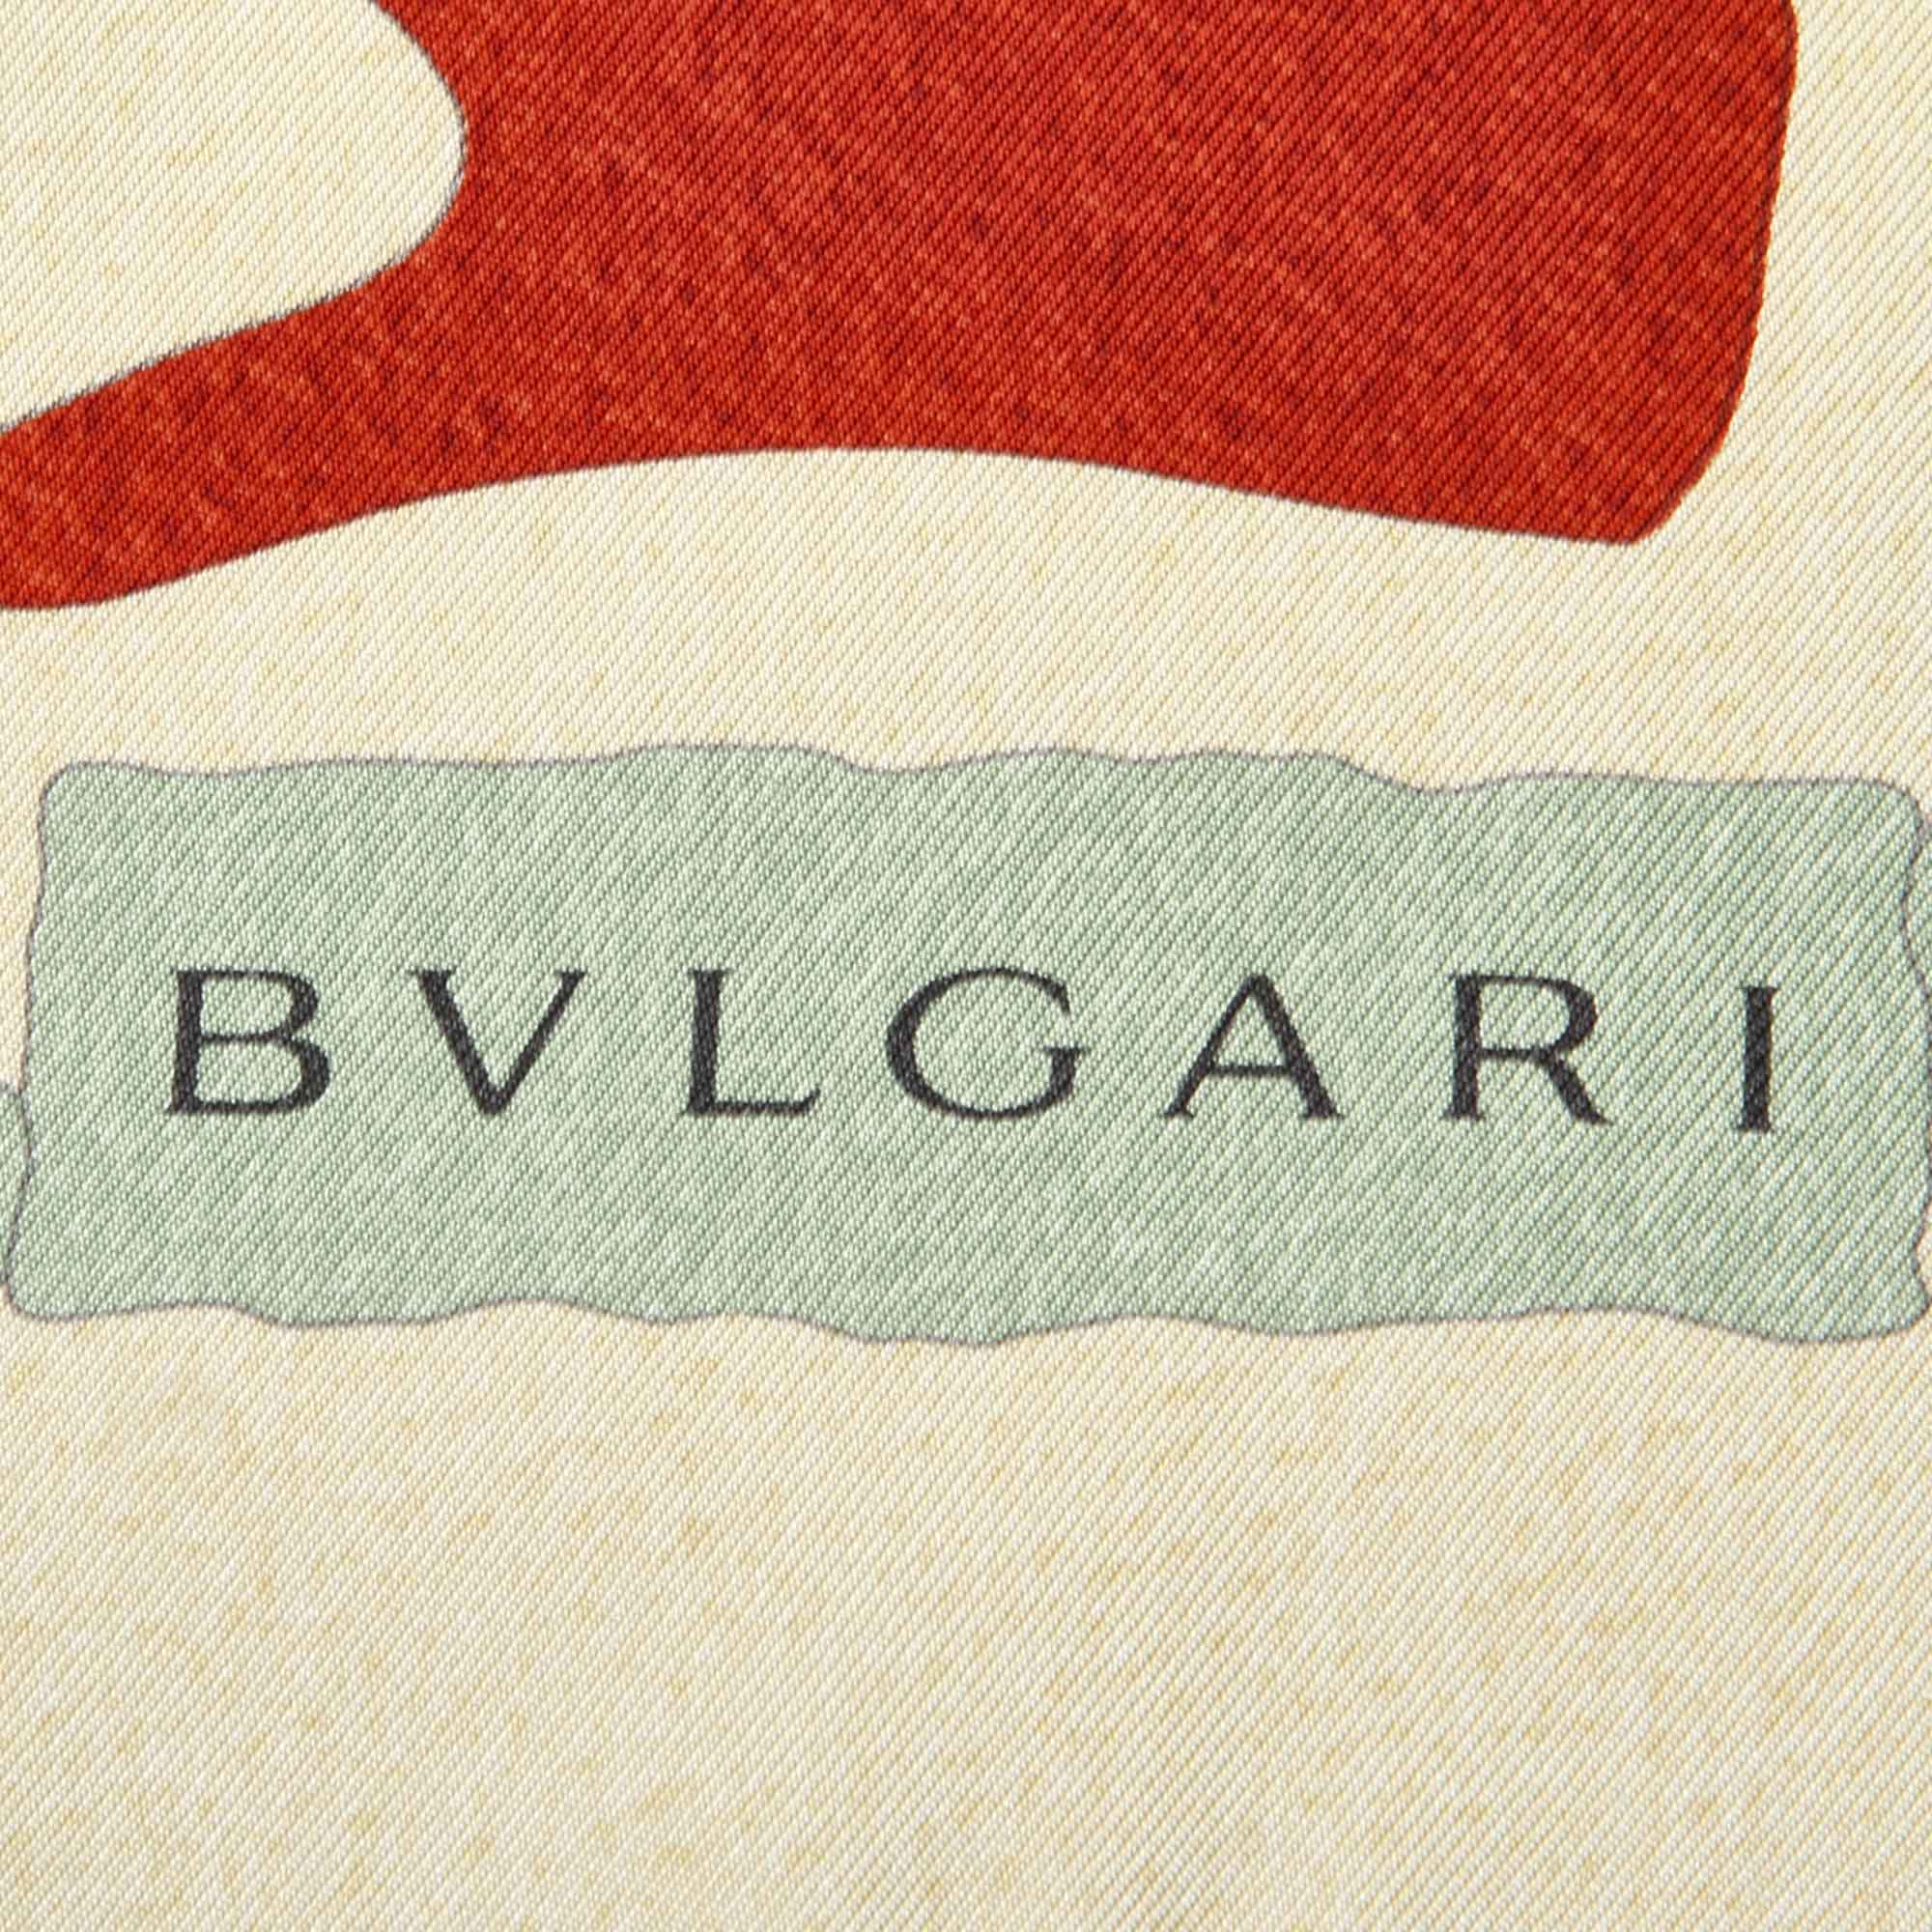 Bvlgari Brown Printed Silk Scarf